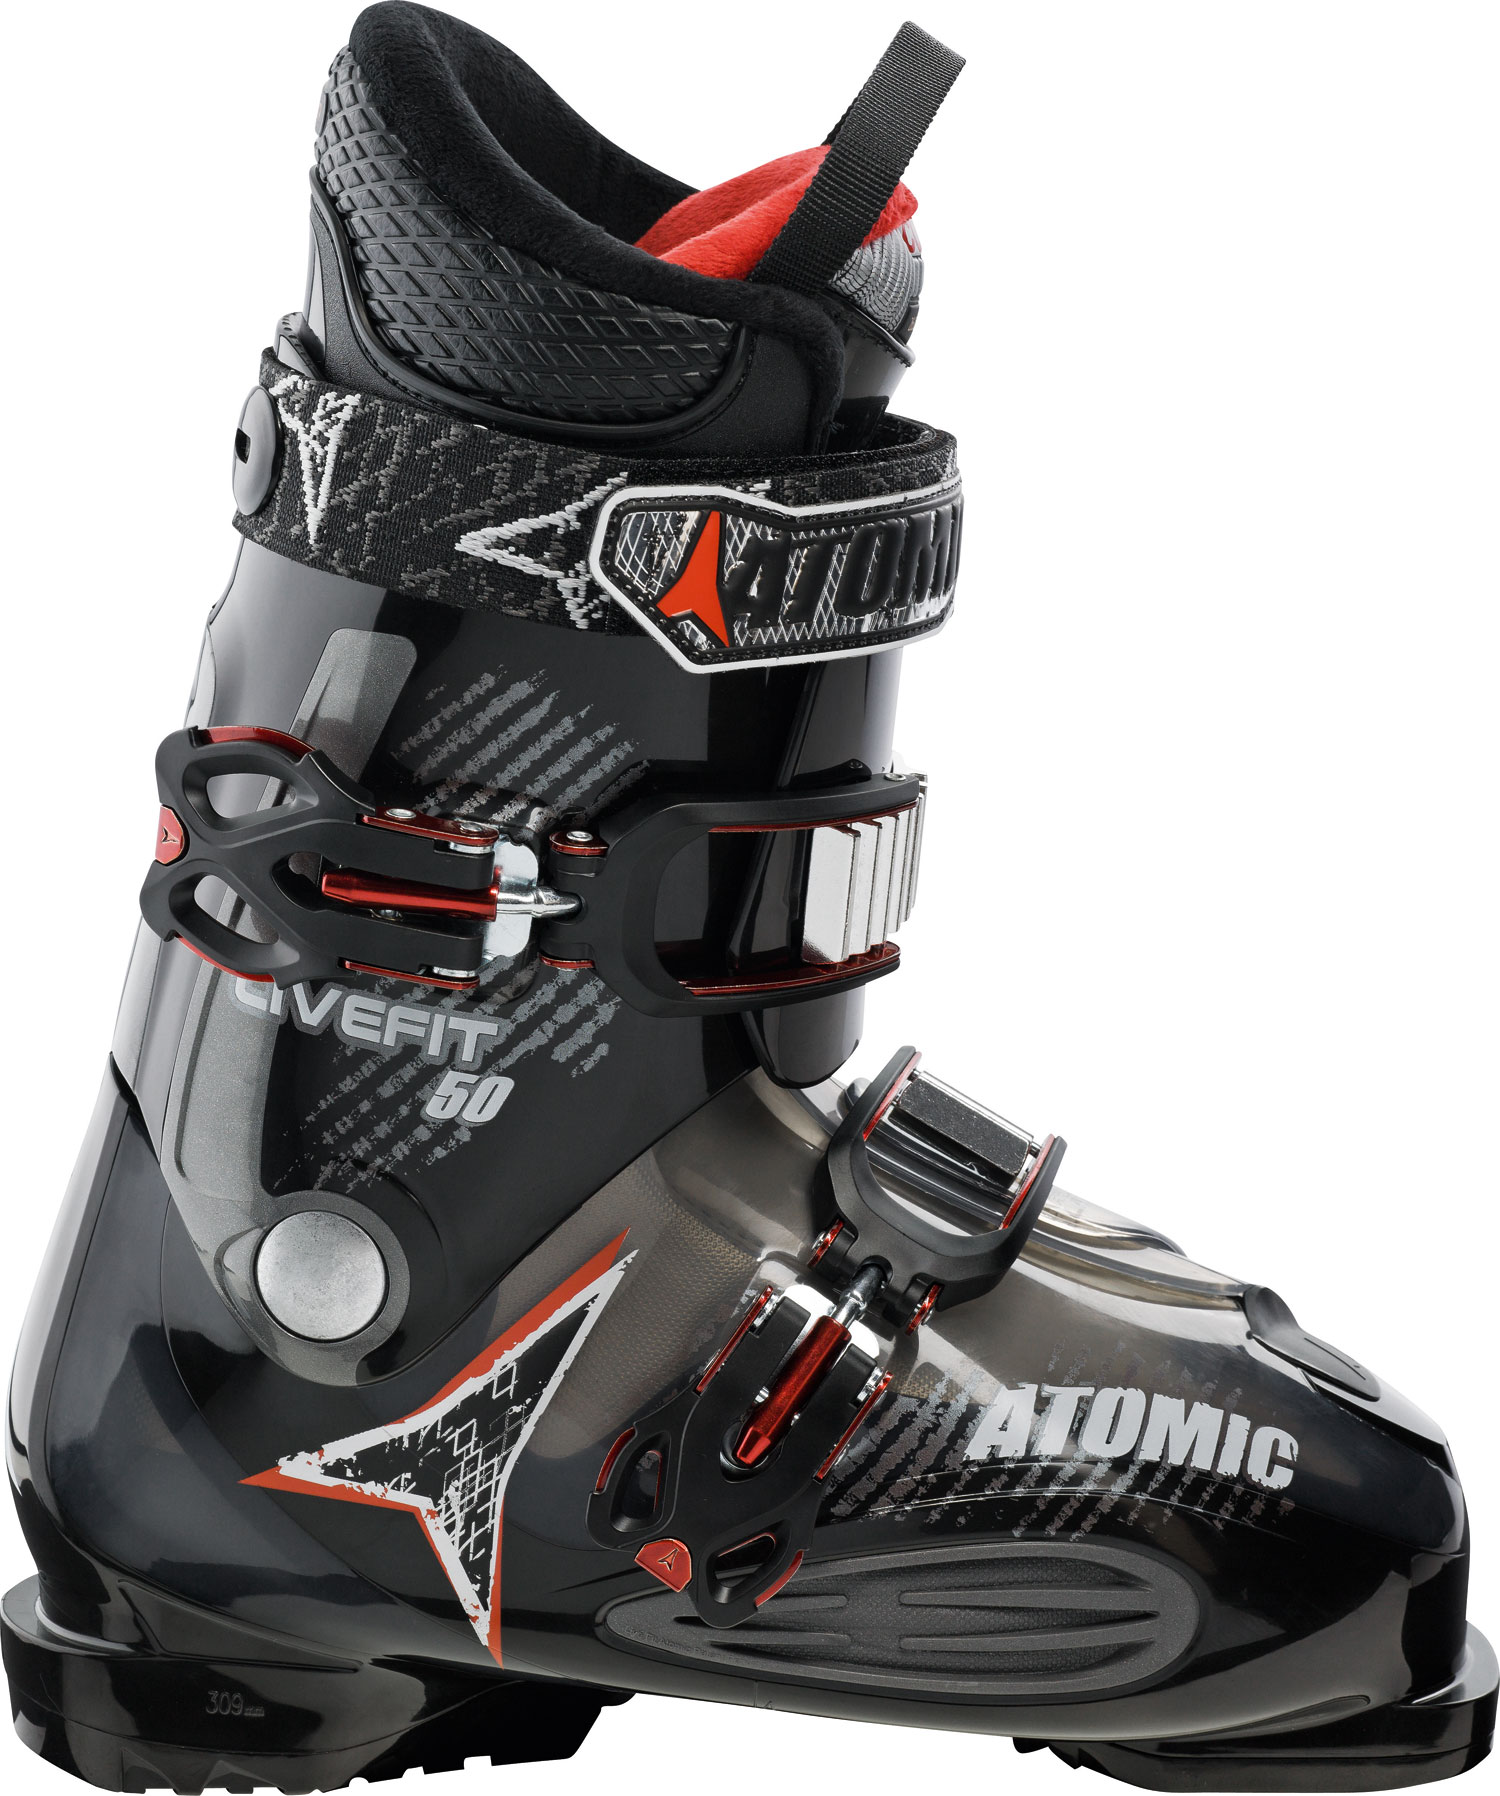 Ski Key Features of the Atomic LF 50 Ski Boots: 50 Flex Mega PC Buckle 35mm Strap ASY Comfort Liner Wide Fit Soft Flex 102mm Wide Fit Soft Fit - $222.95